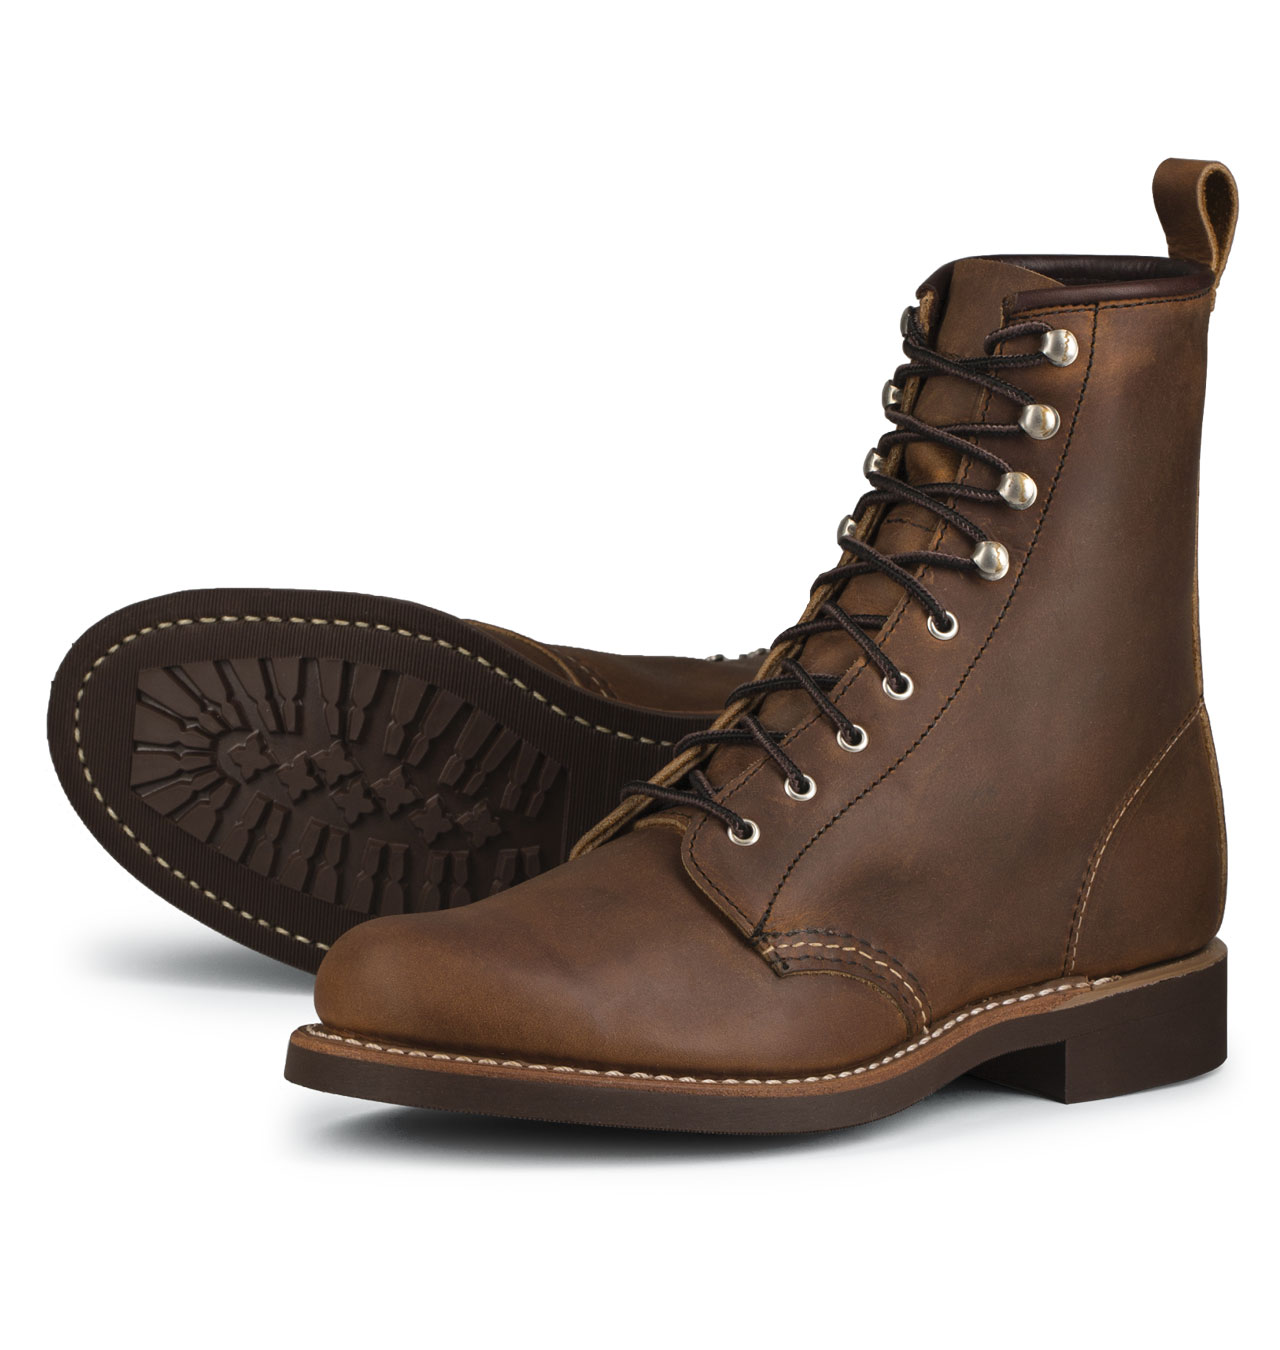 Red Wing Shoes Woman 3362 Silversmith - Copper Rough & Tough